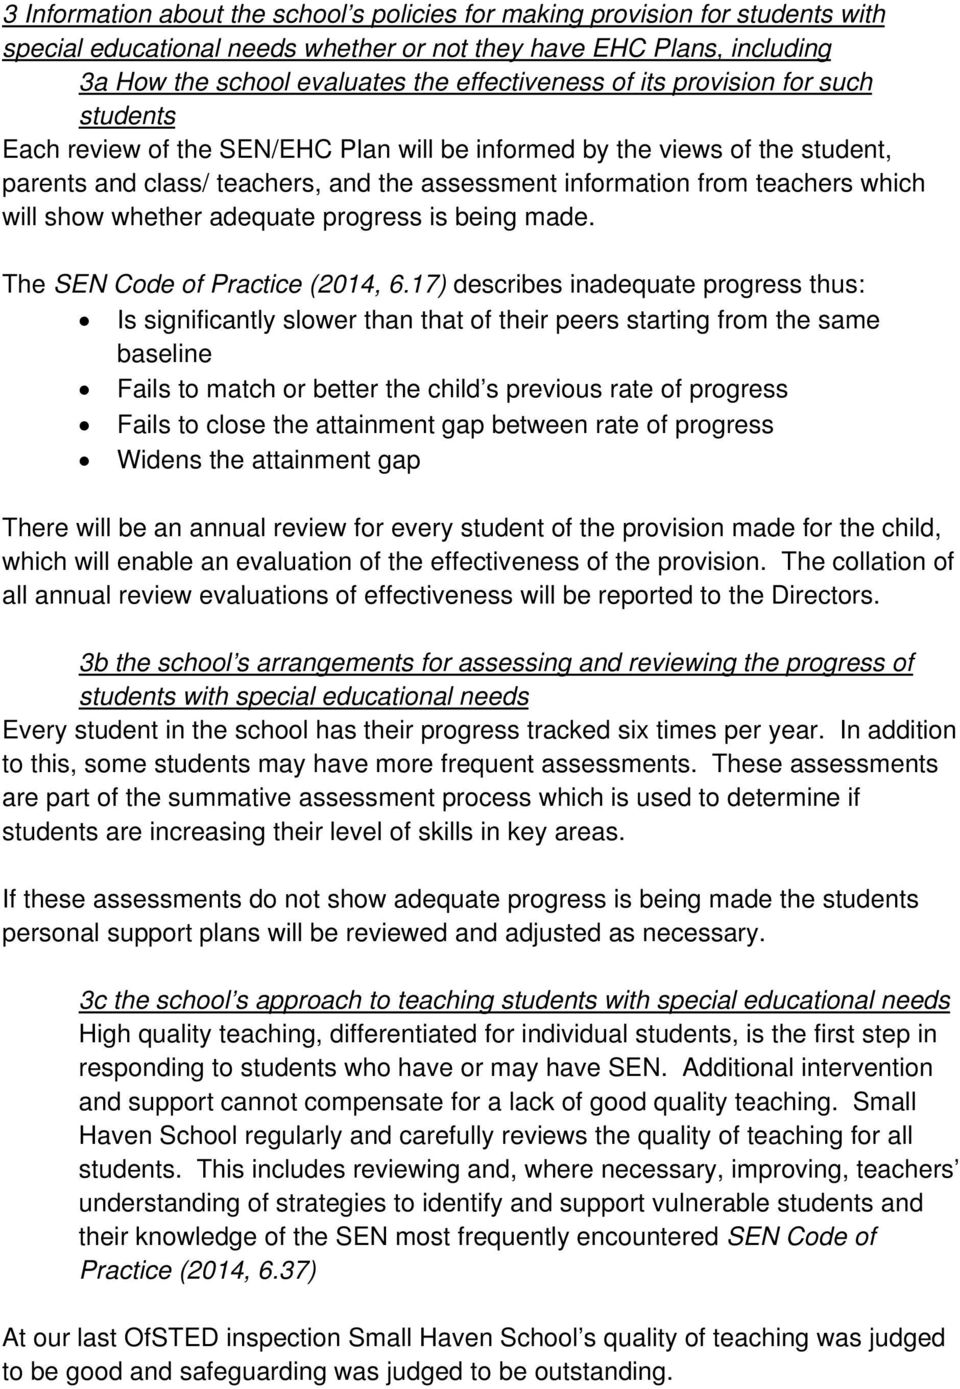 show whether adequate progress is being made. The SEN Code of Practice (2014, 6.